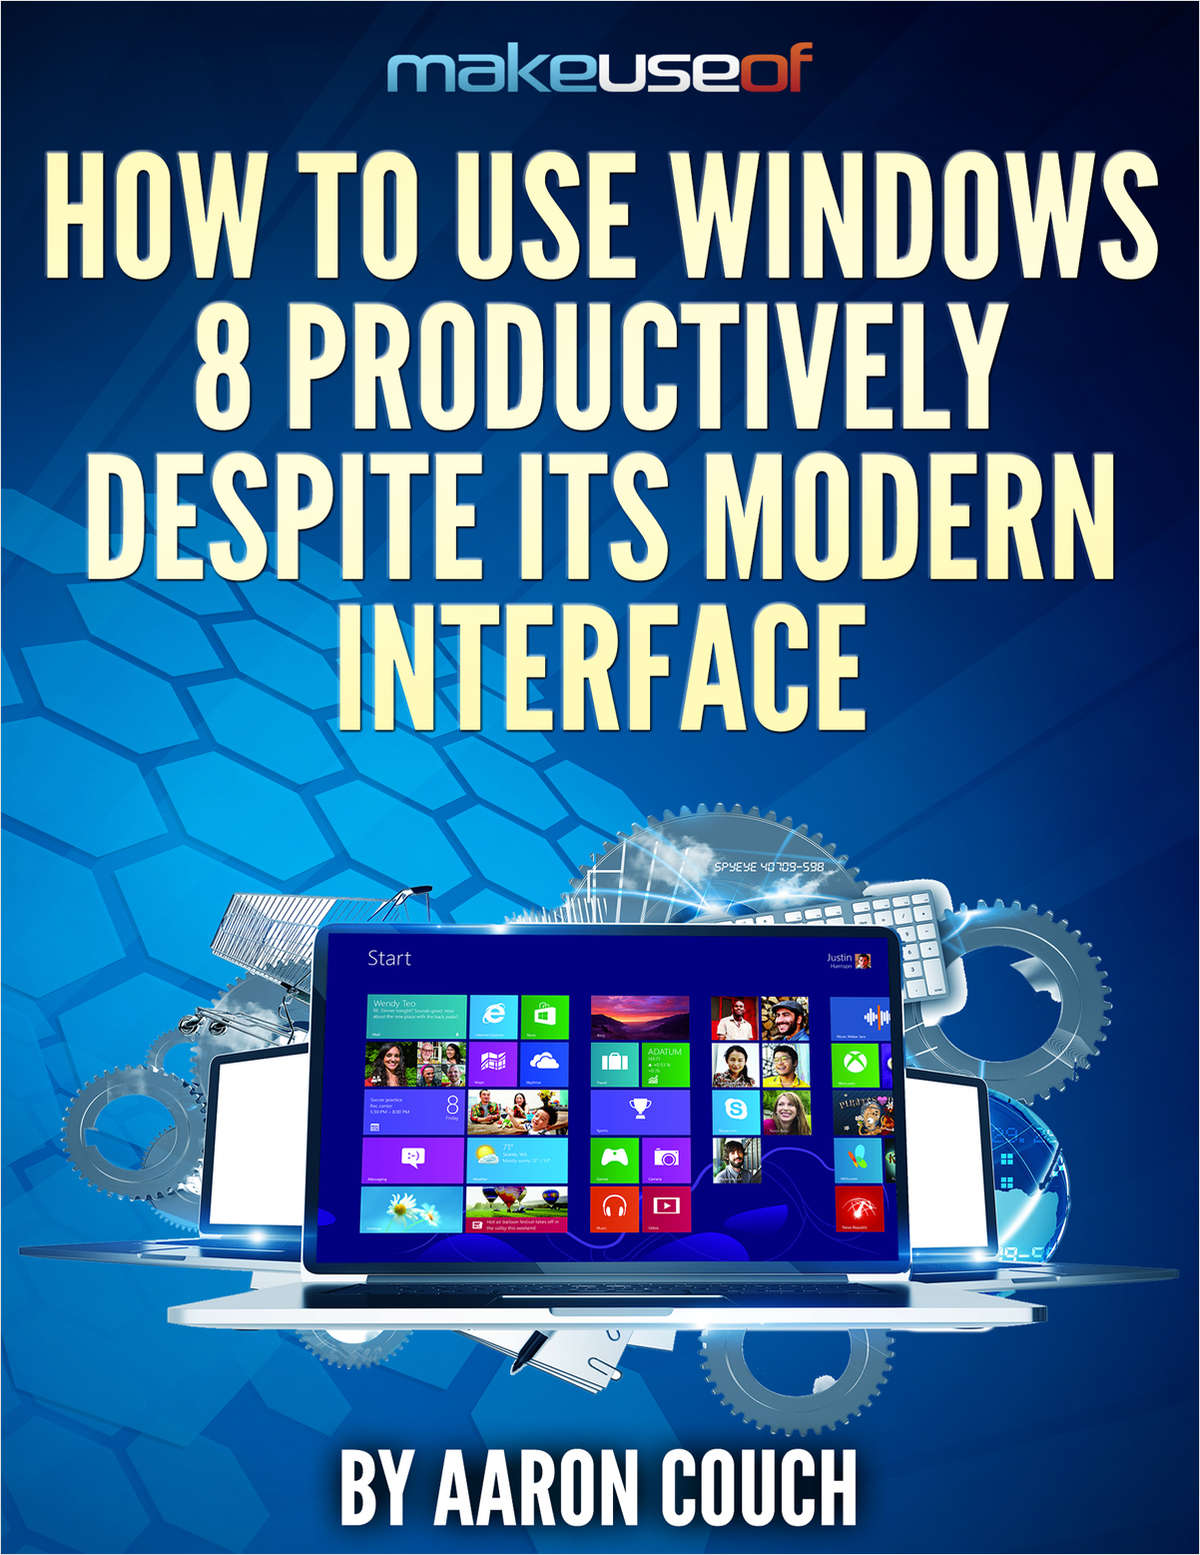 How To Use Windows 8 Productively Despite Its Modern Interface